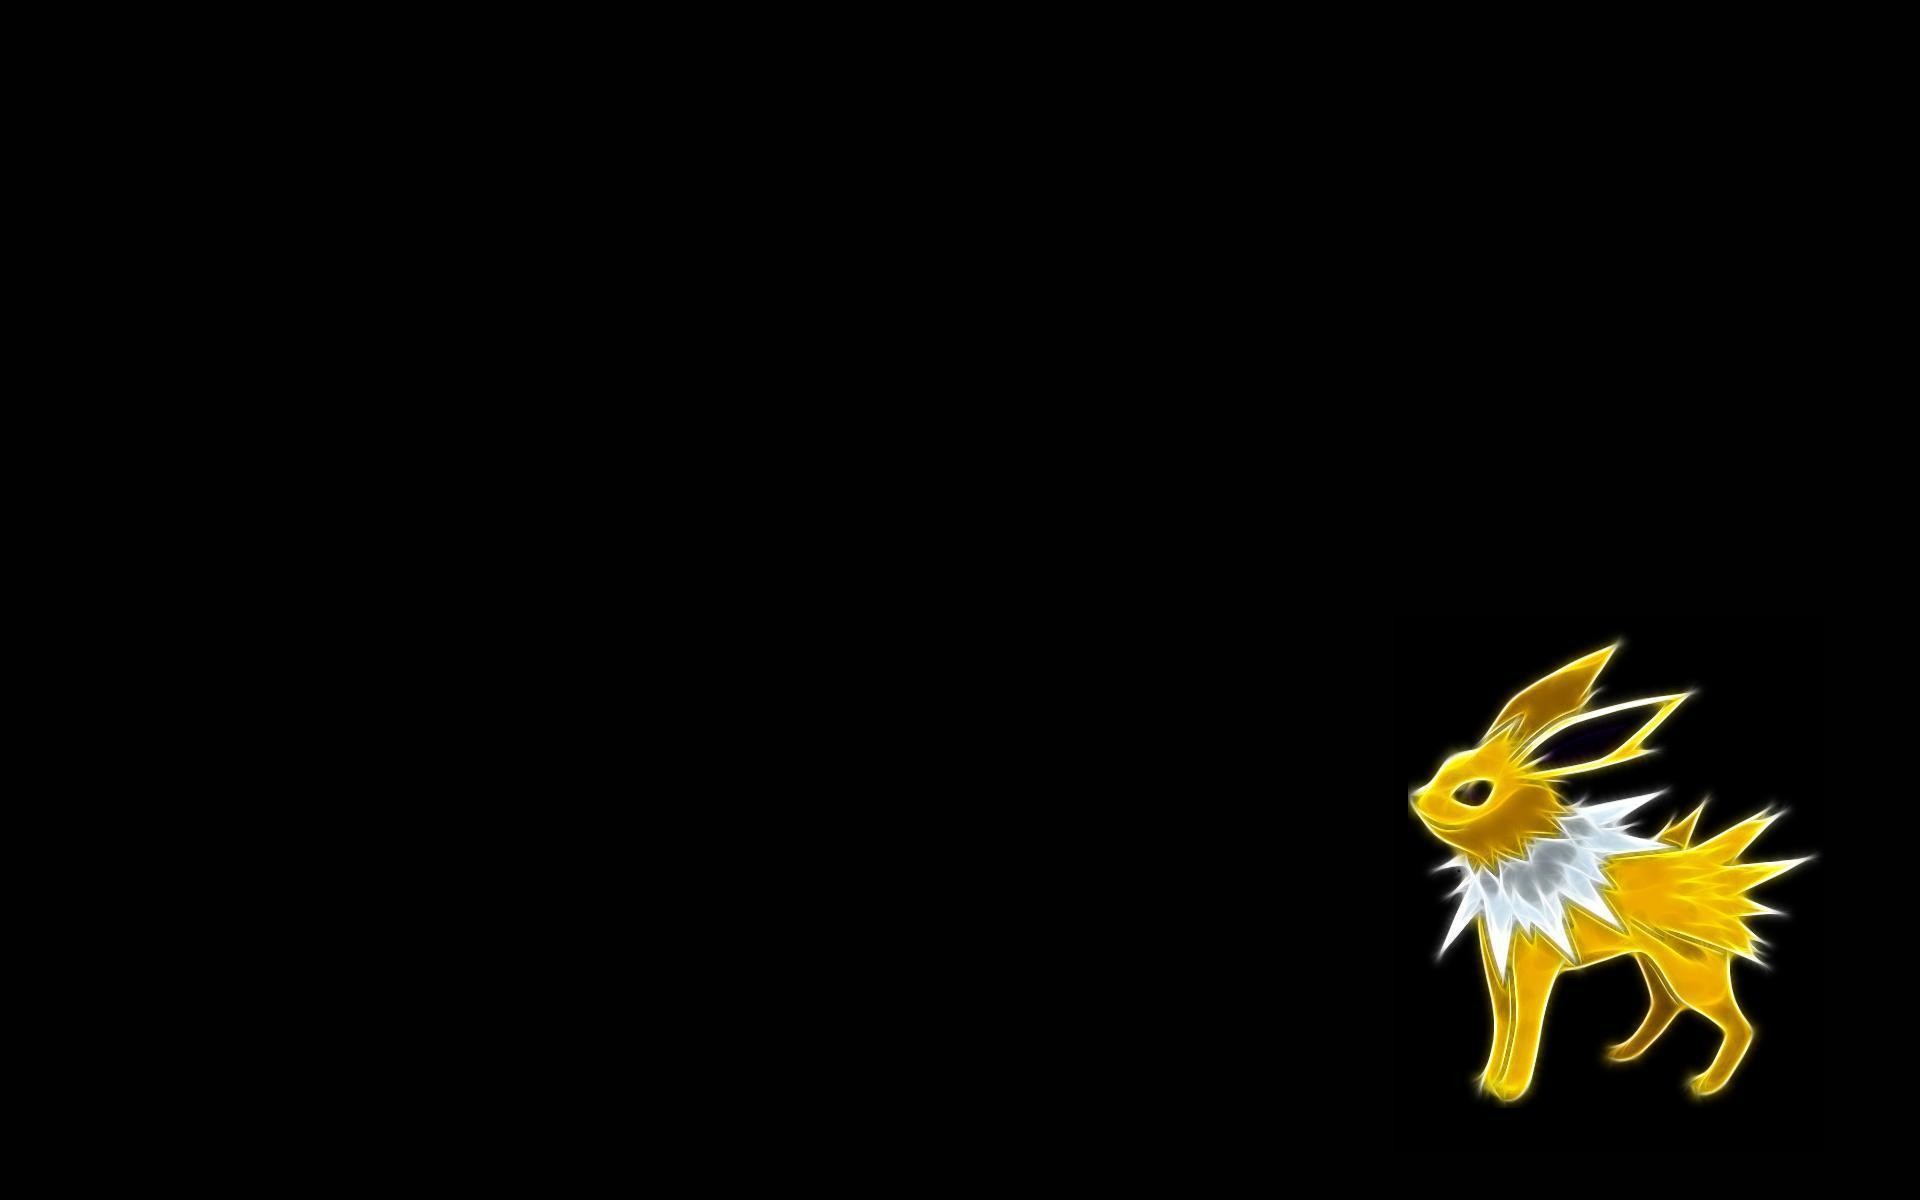 1920x1200 Eevee Wallpapers for Computer - WallpaperSafari